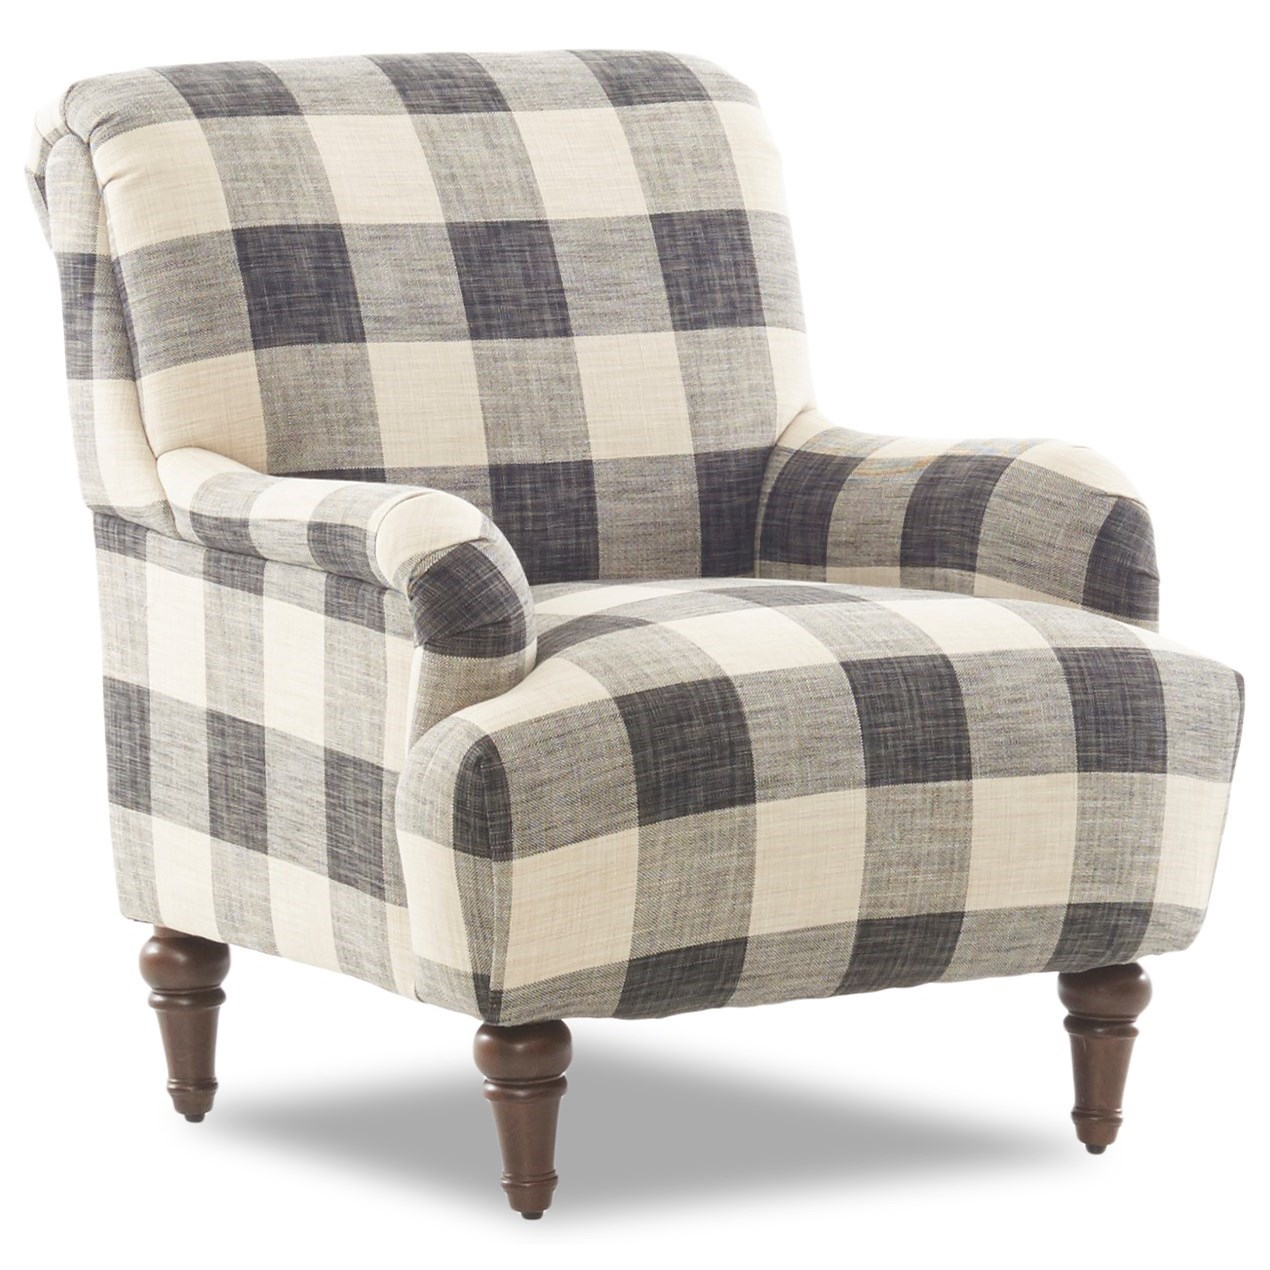 Occasional Chair with Turned Legs